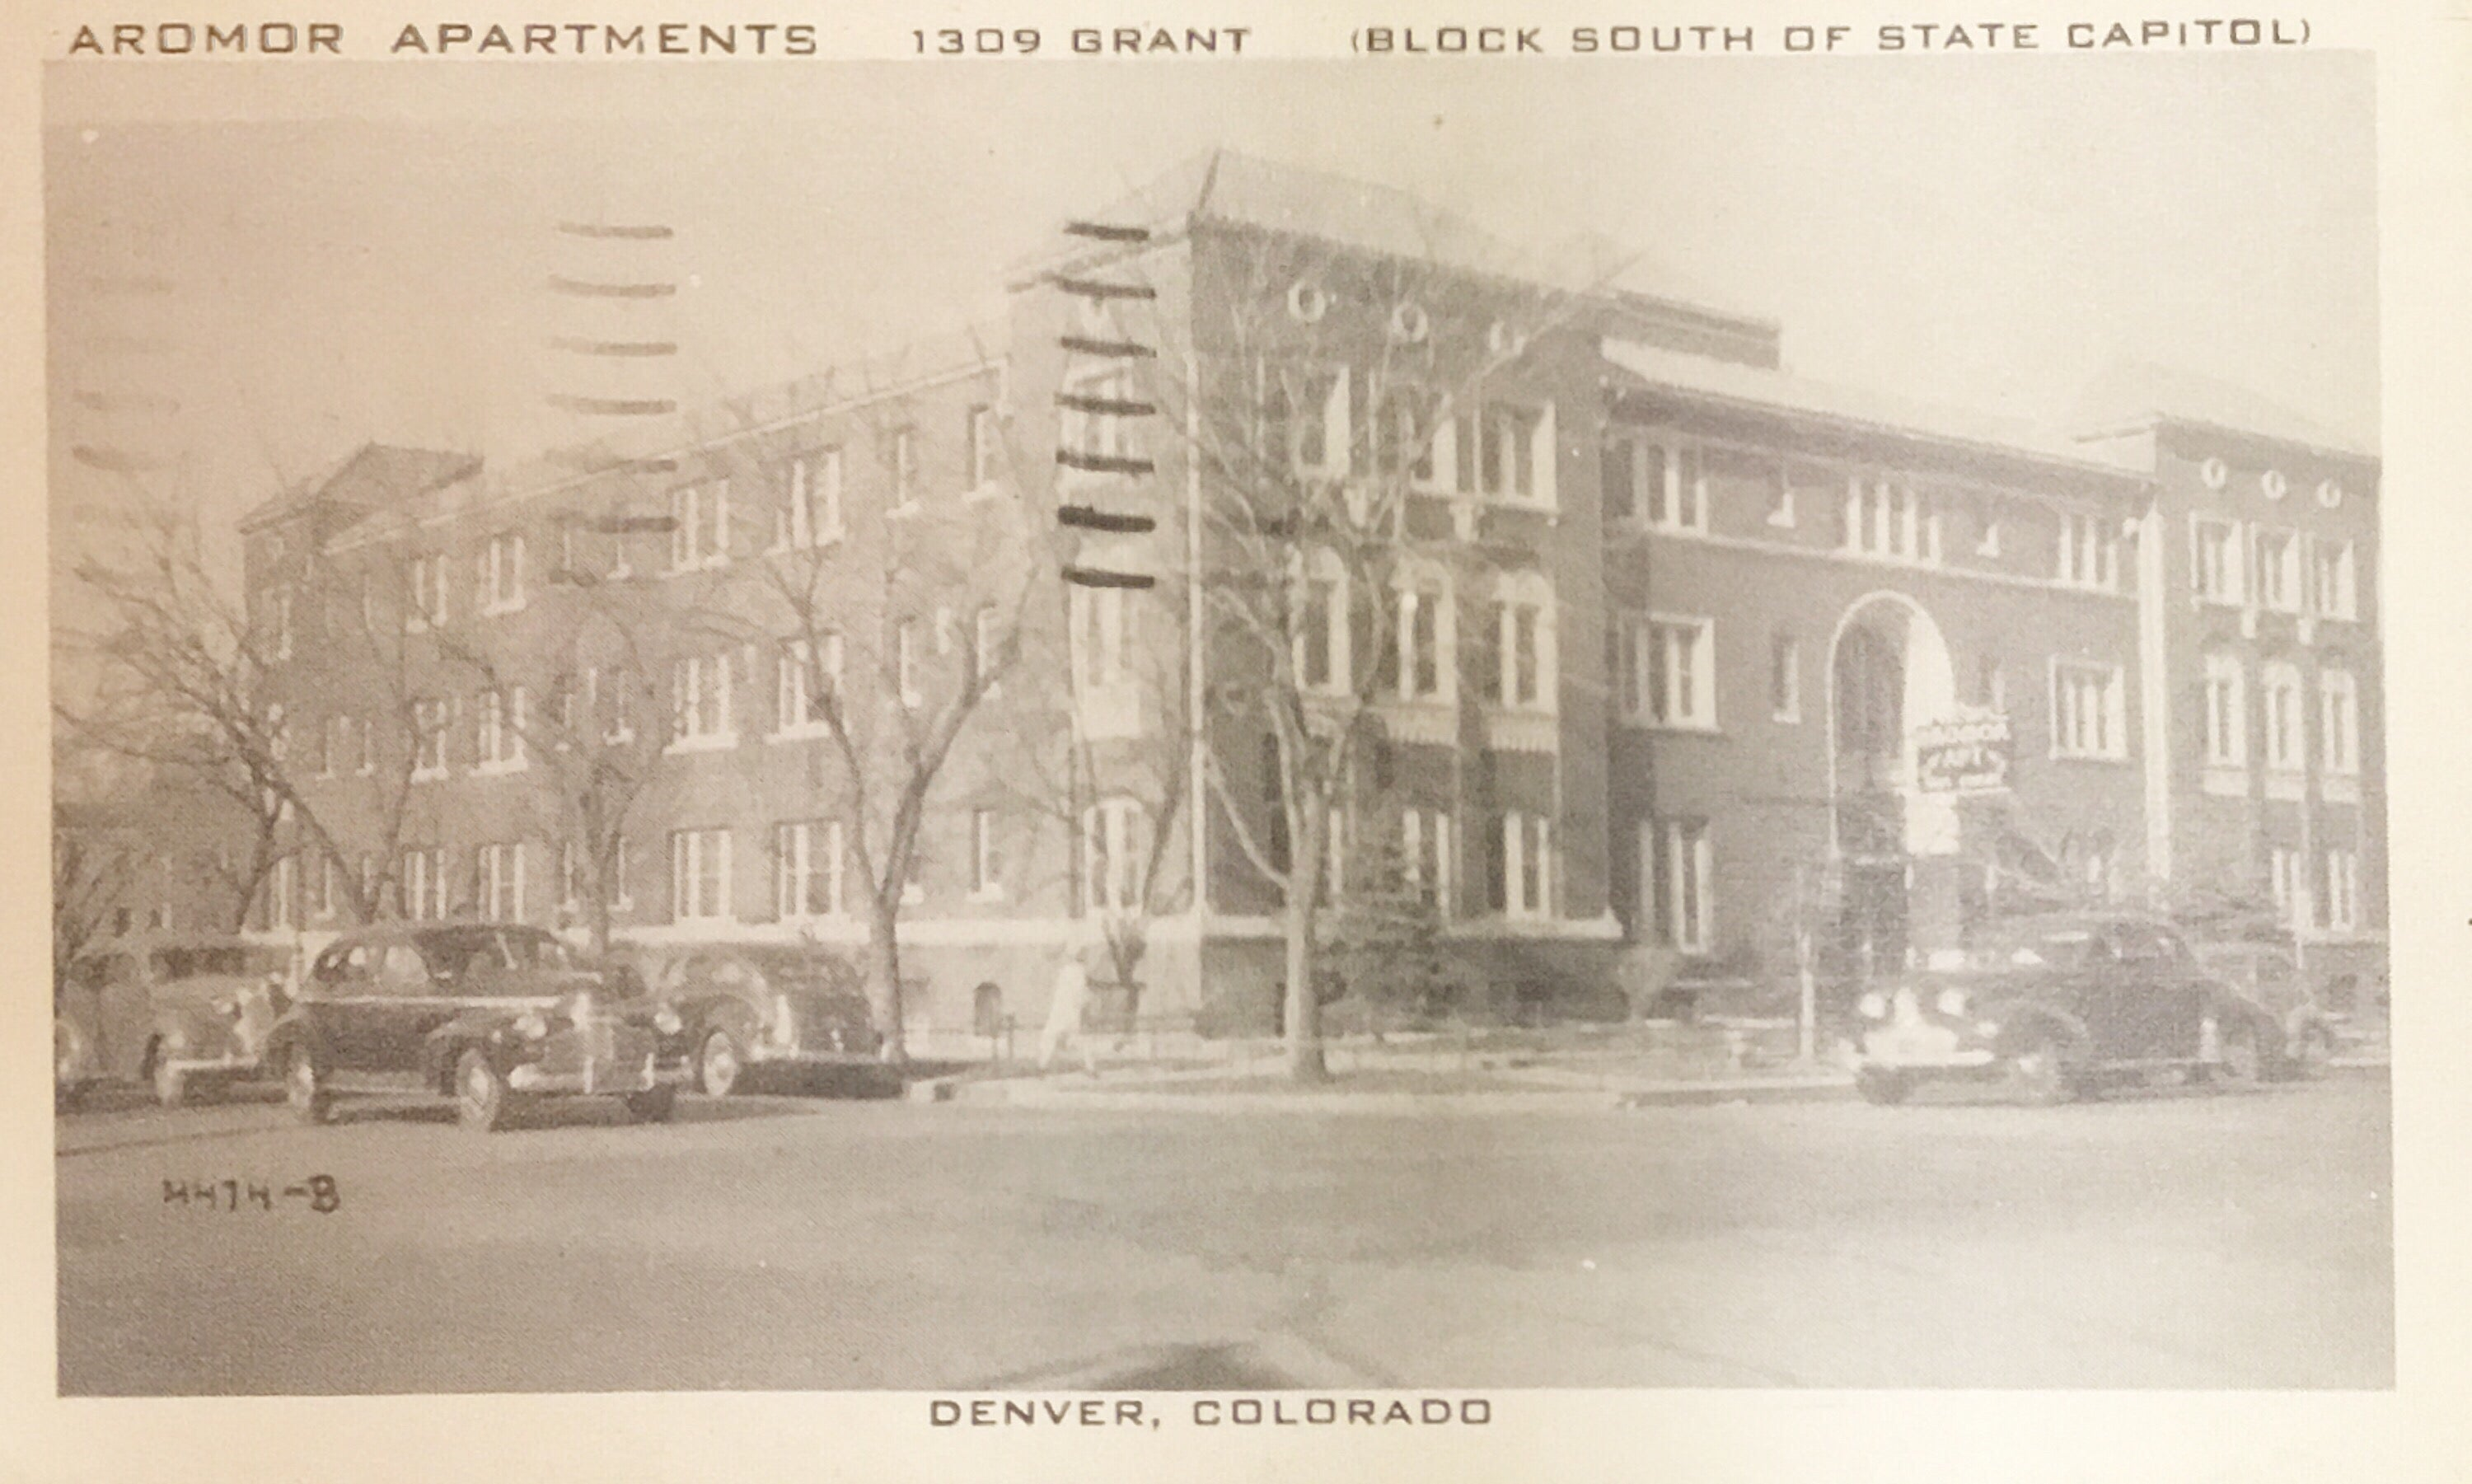 Vintage Postcard Armor Apartments 1309 Grant Denver Colorado 1945 Used AB00128